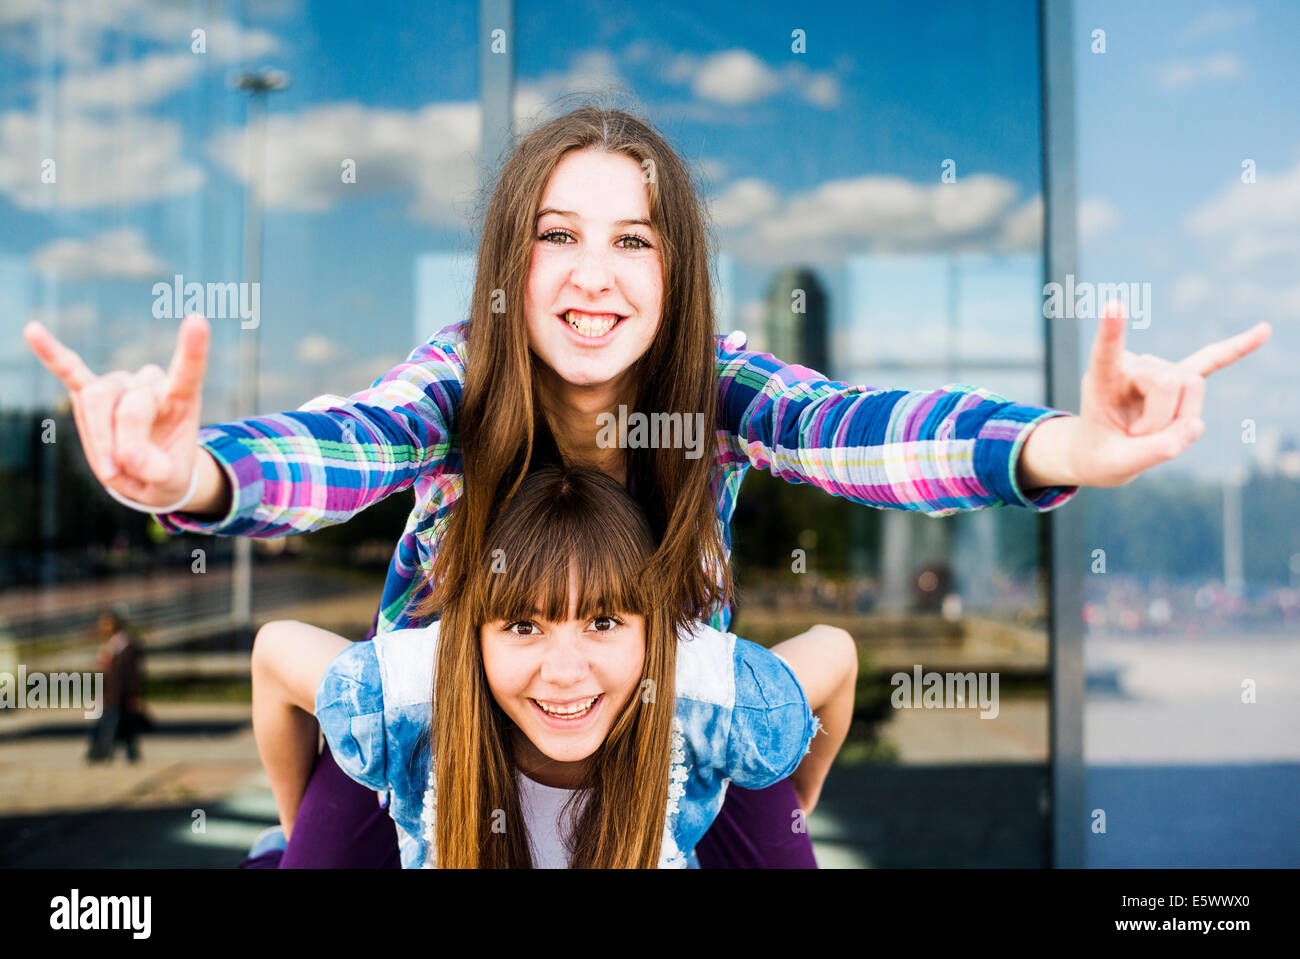 Two young women piggybacking making I love you hand gesture - Stock Image